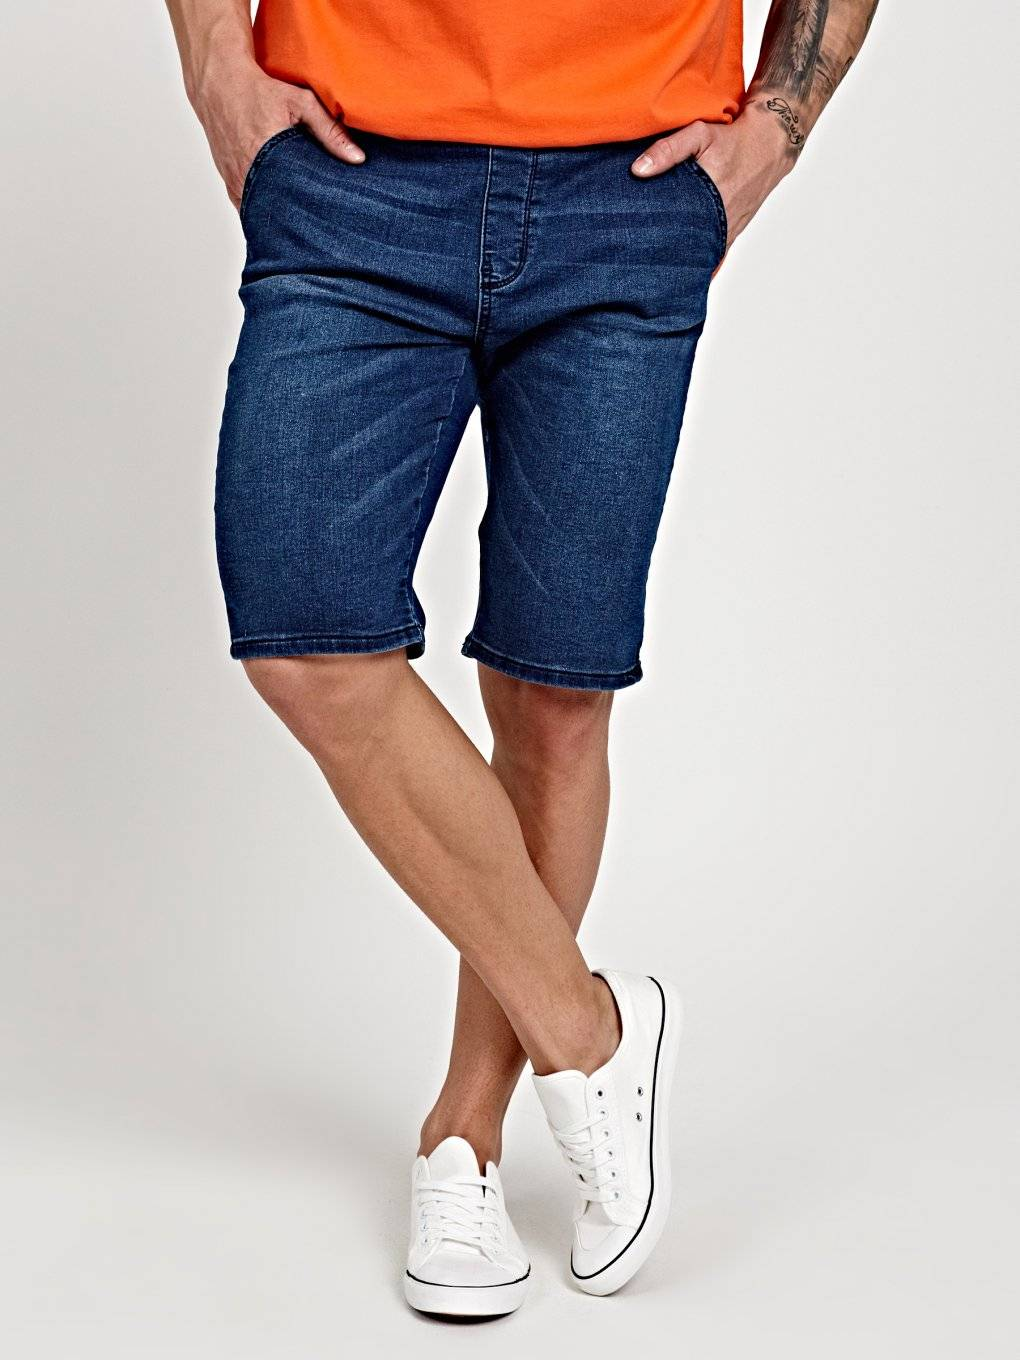 DENIM SHORTS WITH RIB-KNIT WAIST BAND